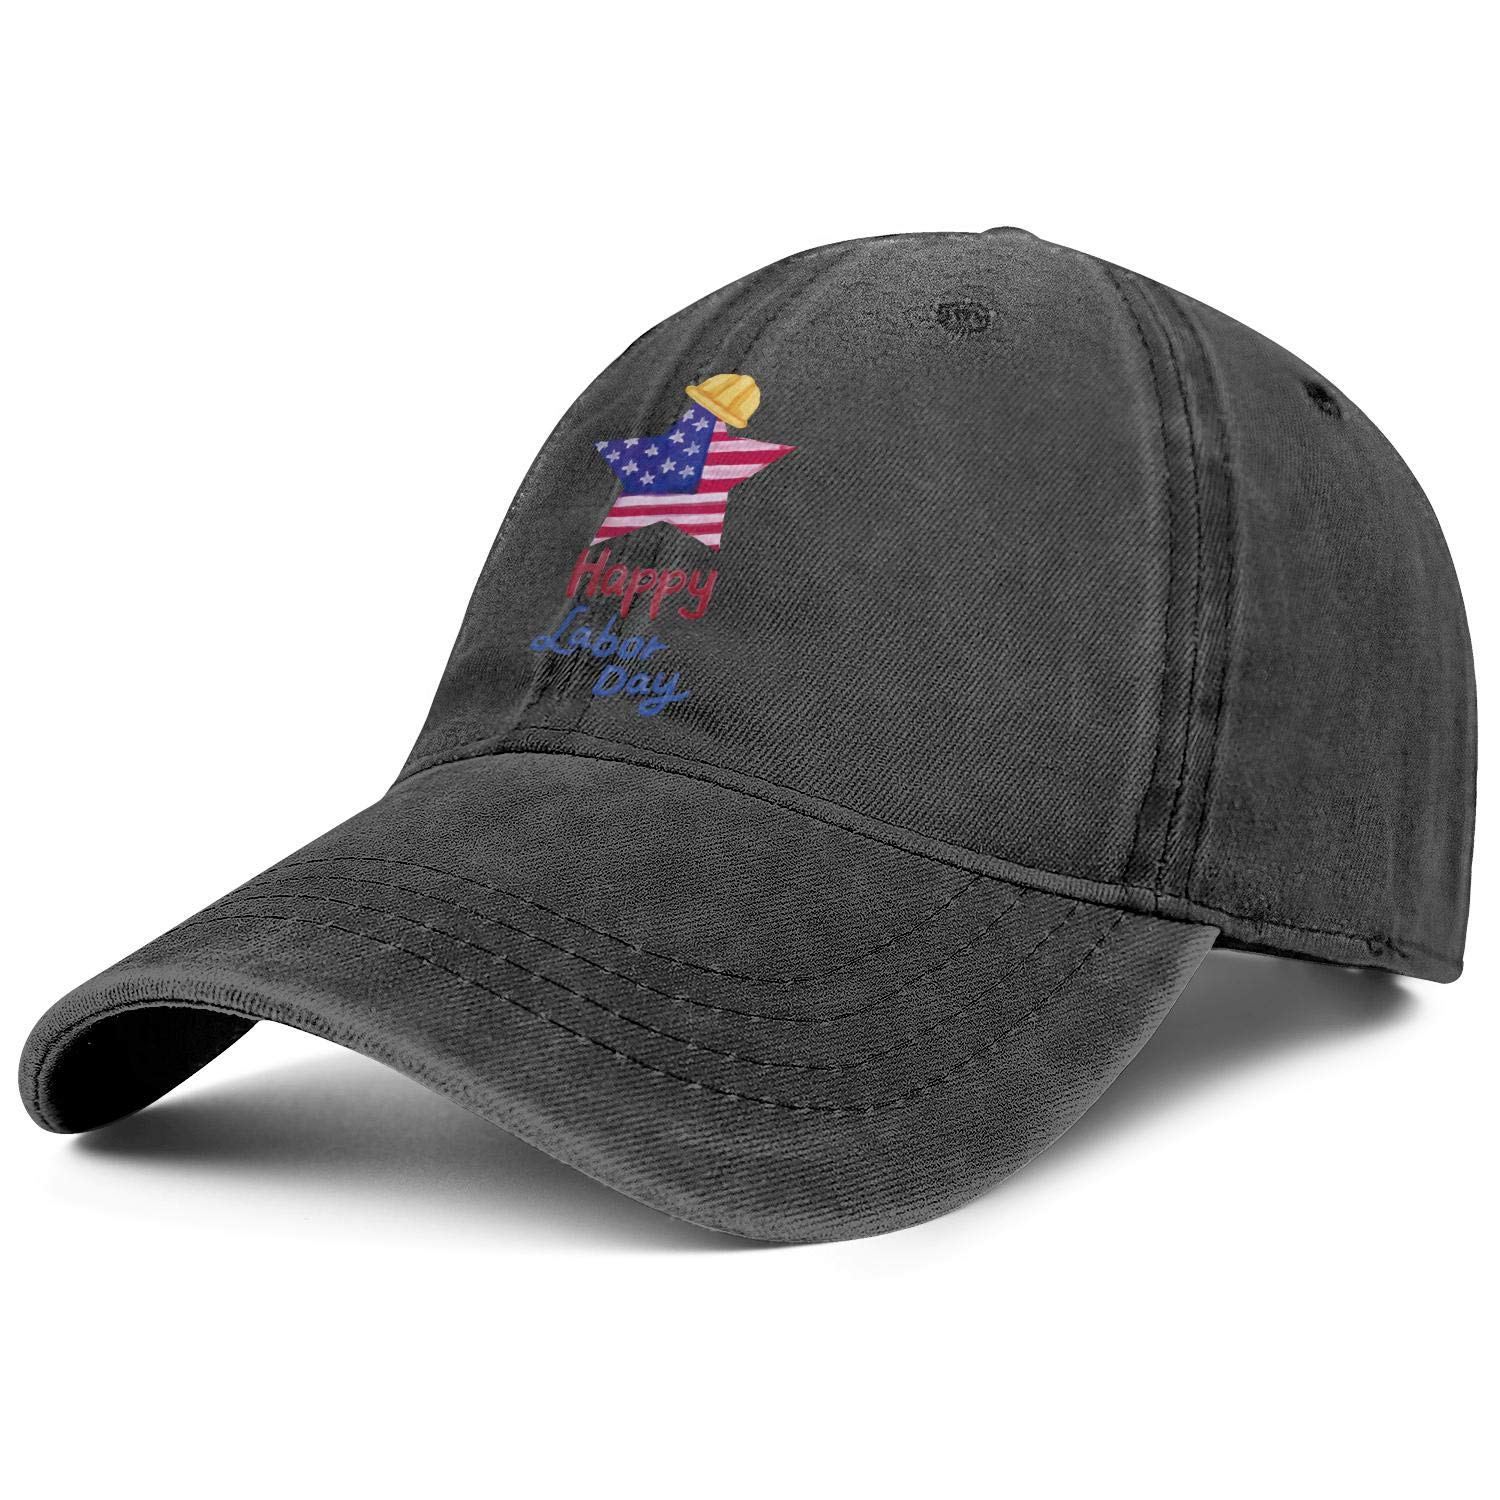 TkYioP Denim Caps Happy Labor Day Adjustable Lightweight Sunscreen Truckers for Women//Men